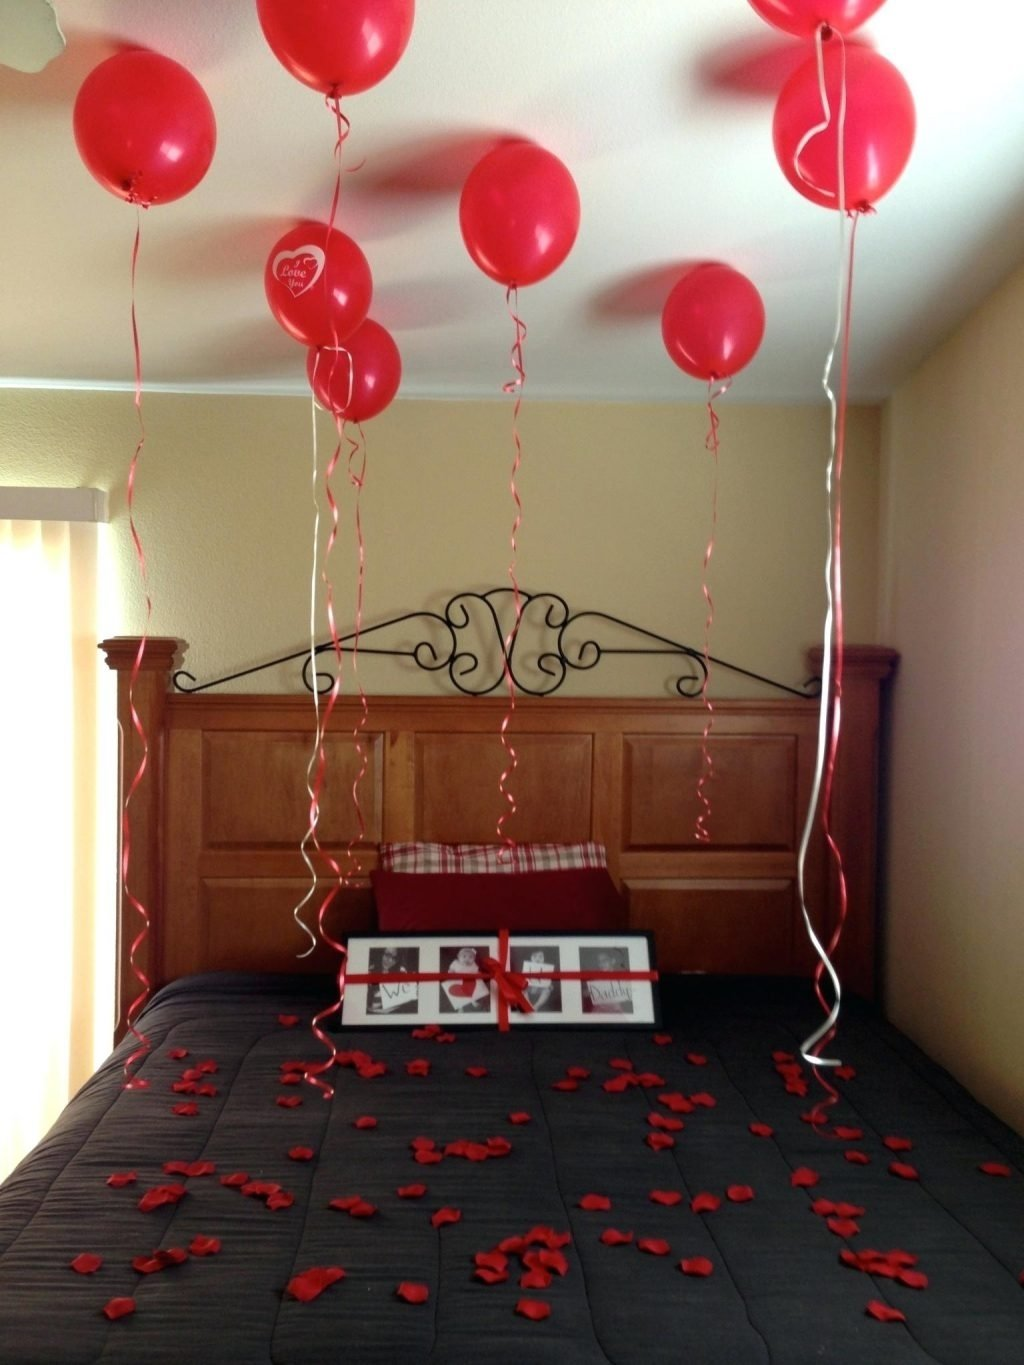 10 Trendy Romantic Ideas For Her At Home valentines day romantic ideas bed decorating for on romantic 5 2020